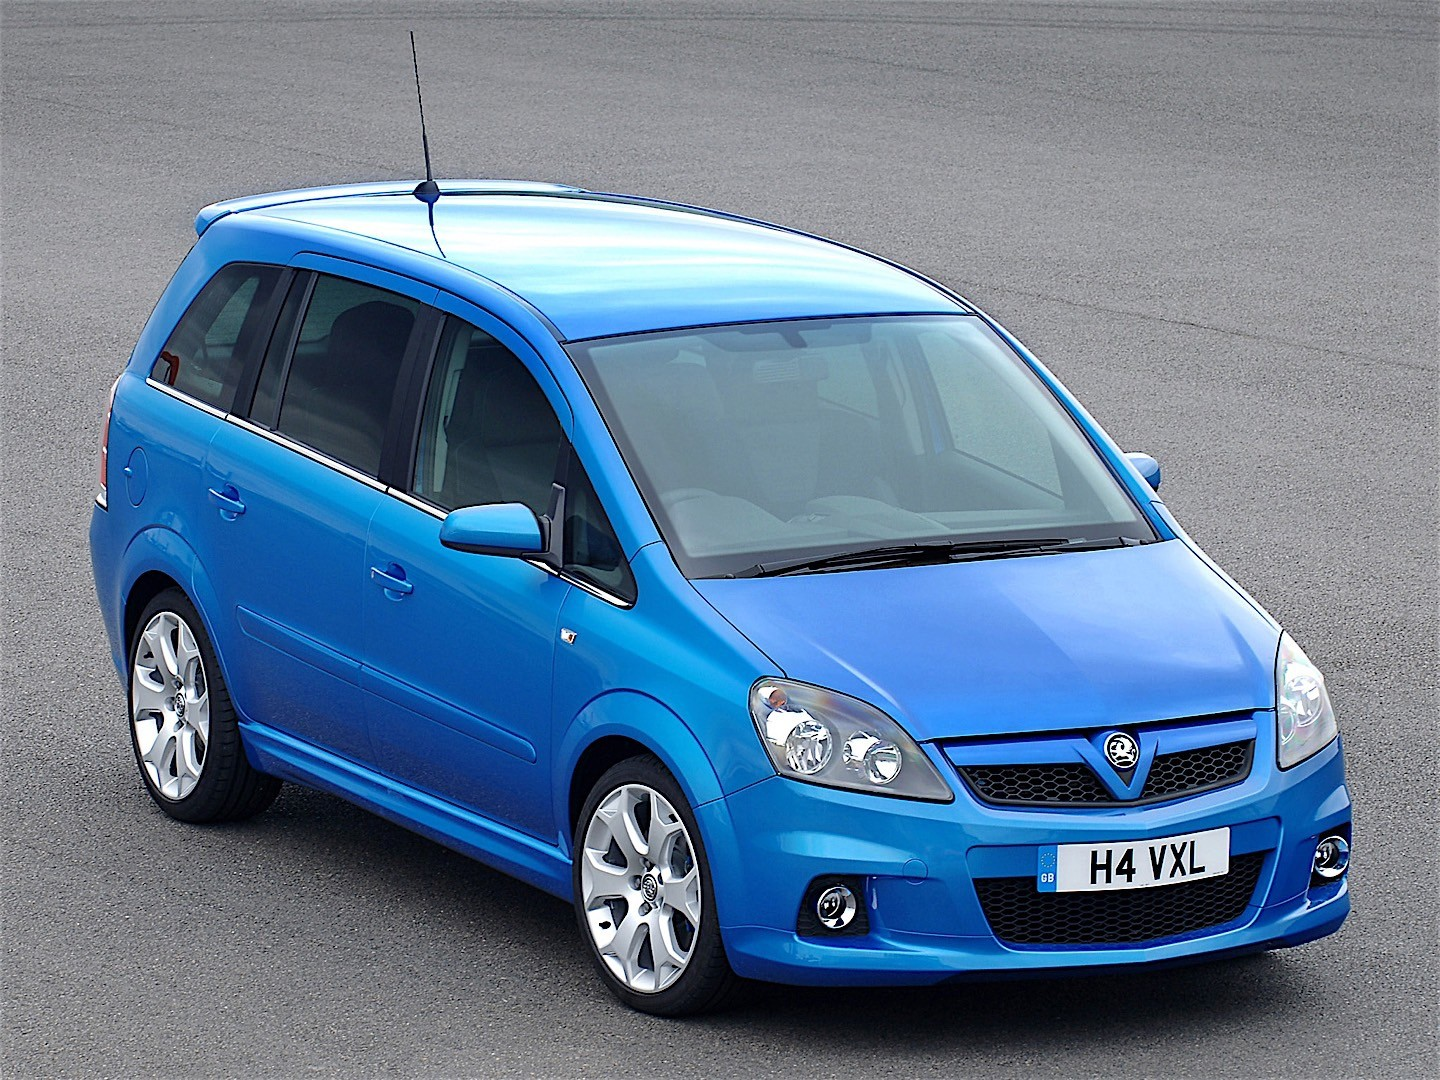 vauxhall zafira vxr specs 2005 2006 2007 2008 2009 2010 autoevolution. Black Bedroom Furniture Sets. Home Design Ideas